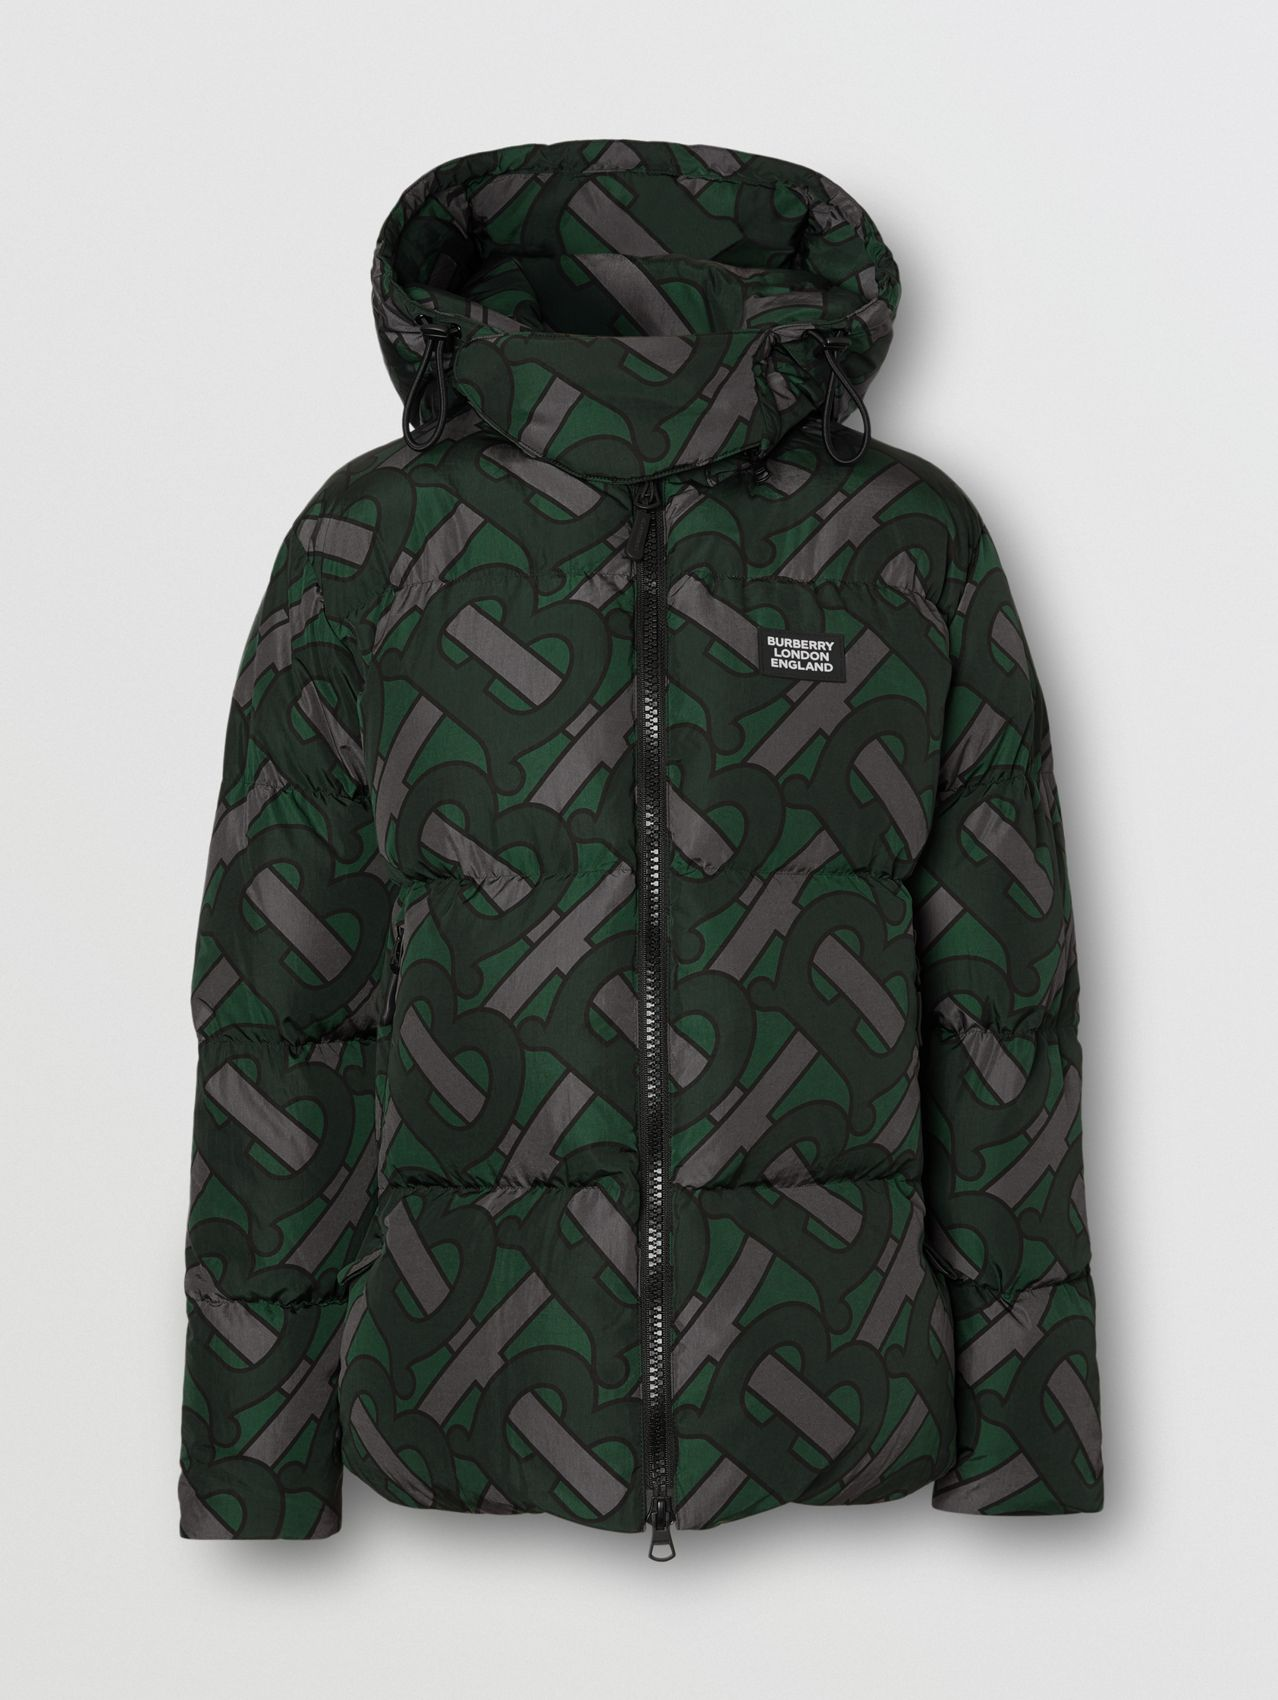 Monogram Print Puffer Jacket (Forest Green)